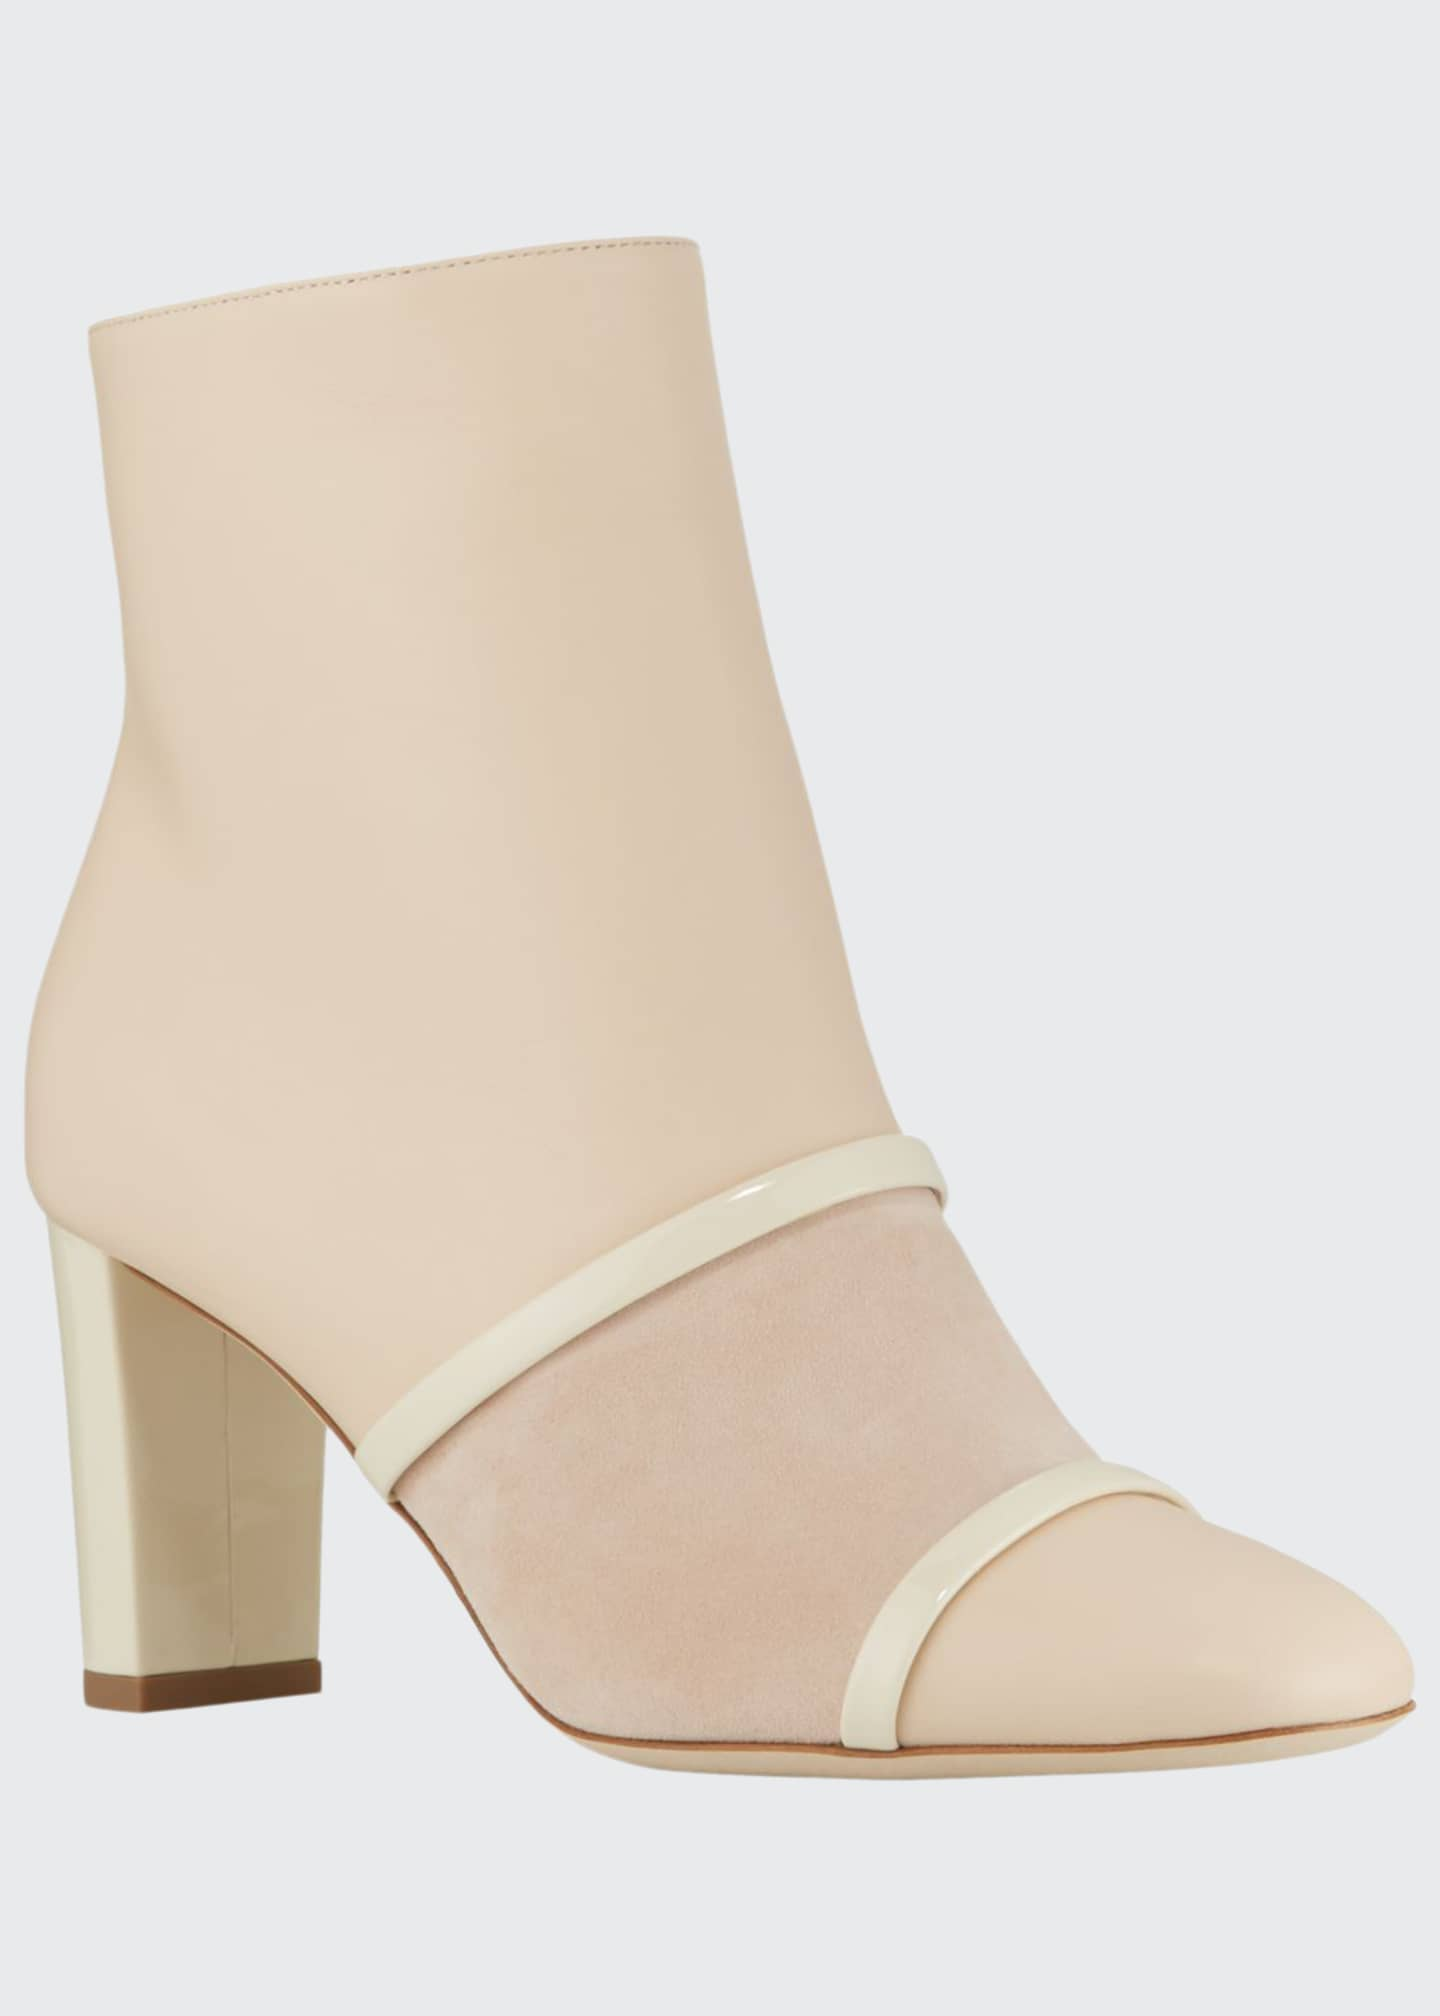 Malone Souliers Dakota Leather and Suede Booties